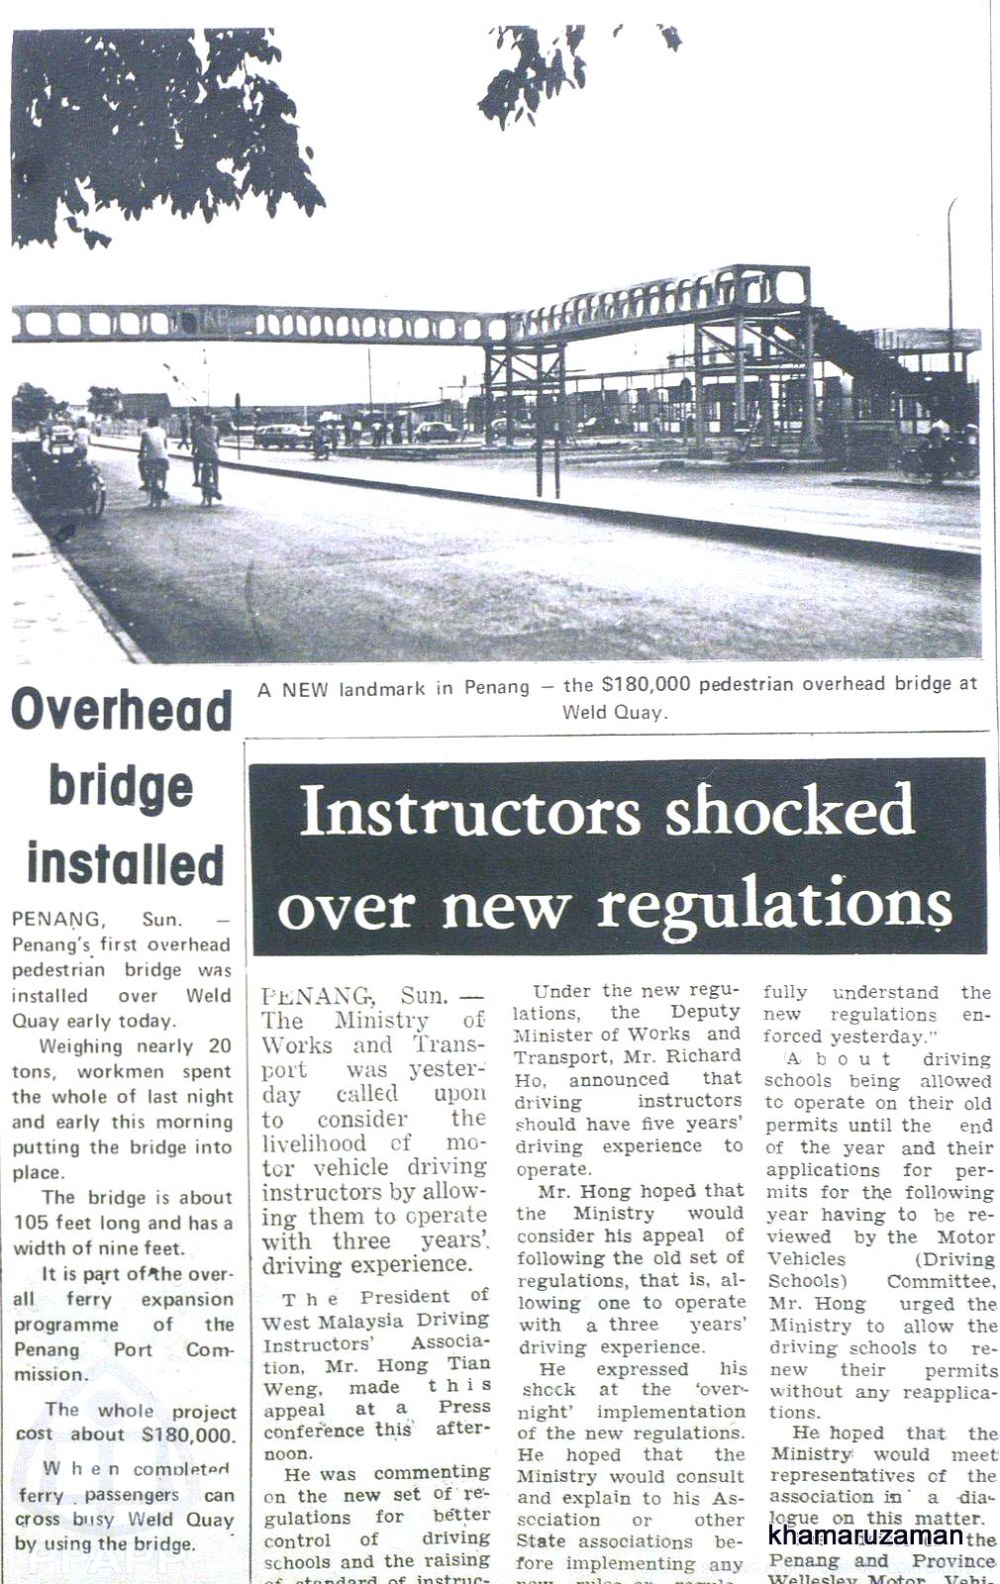 Penang overhead bridge news clipping